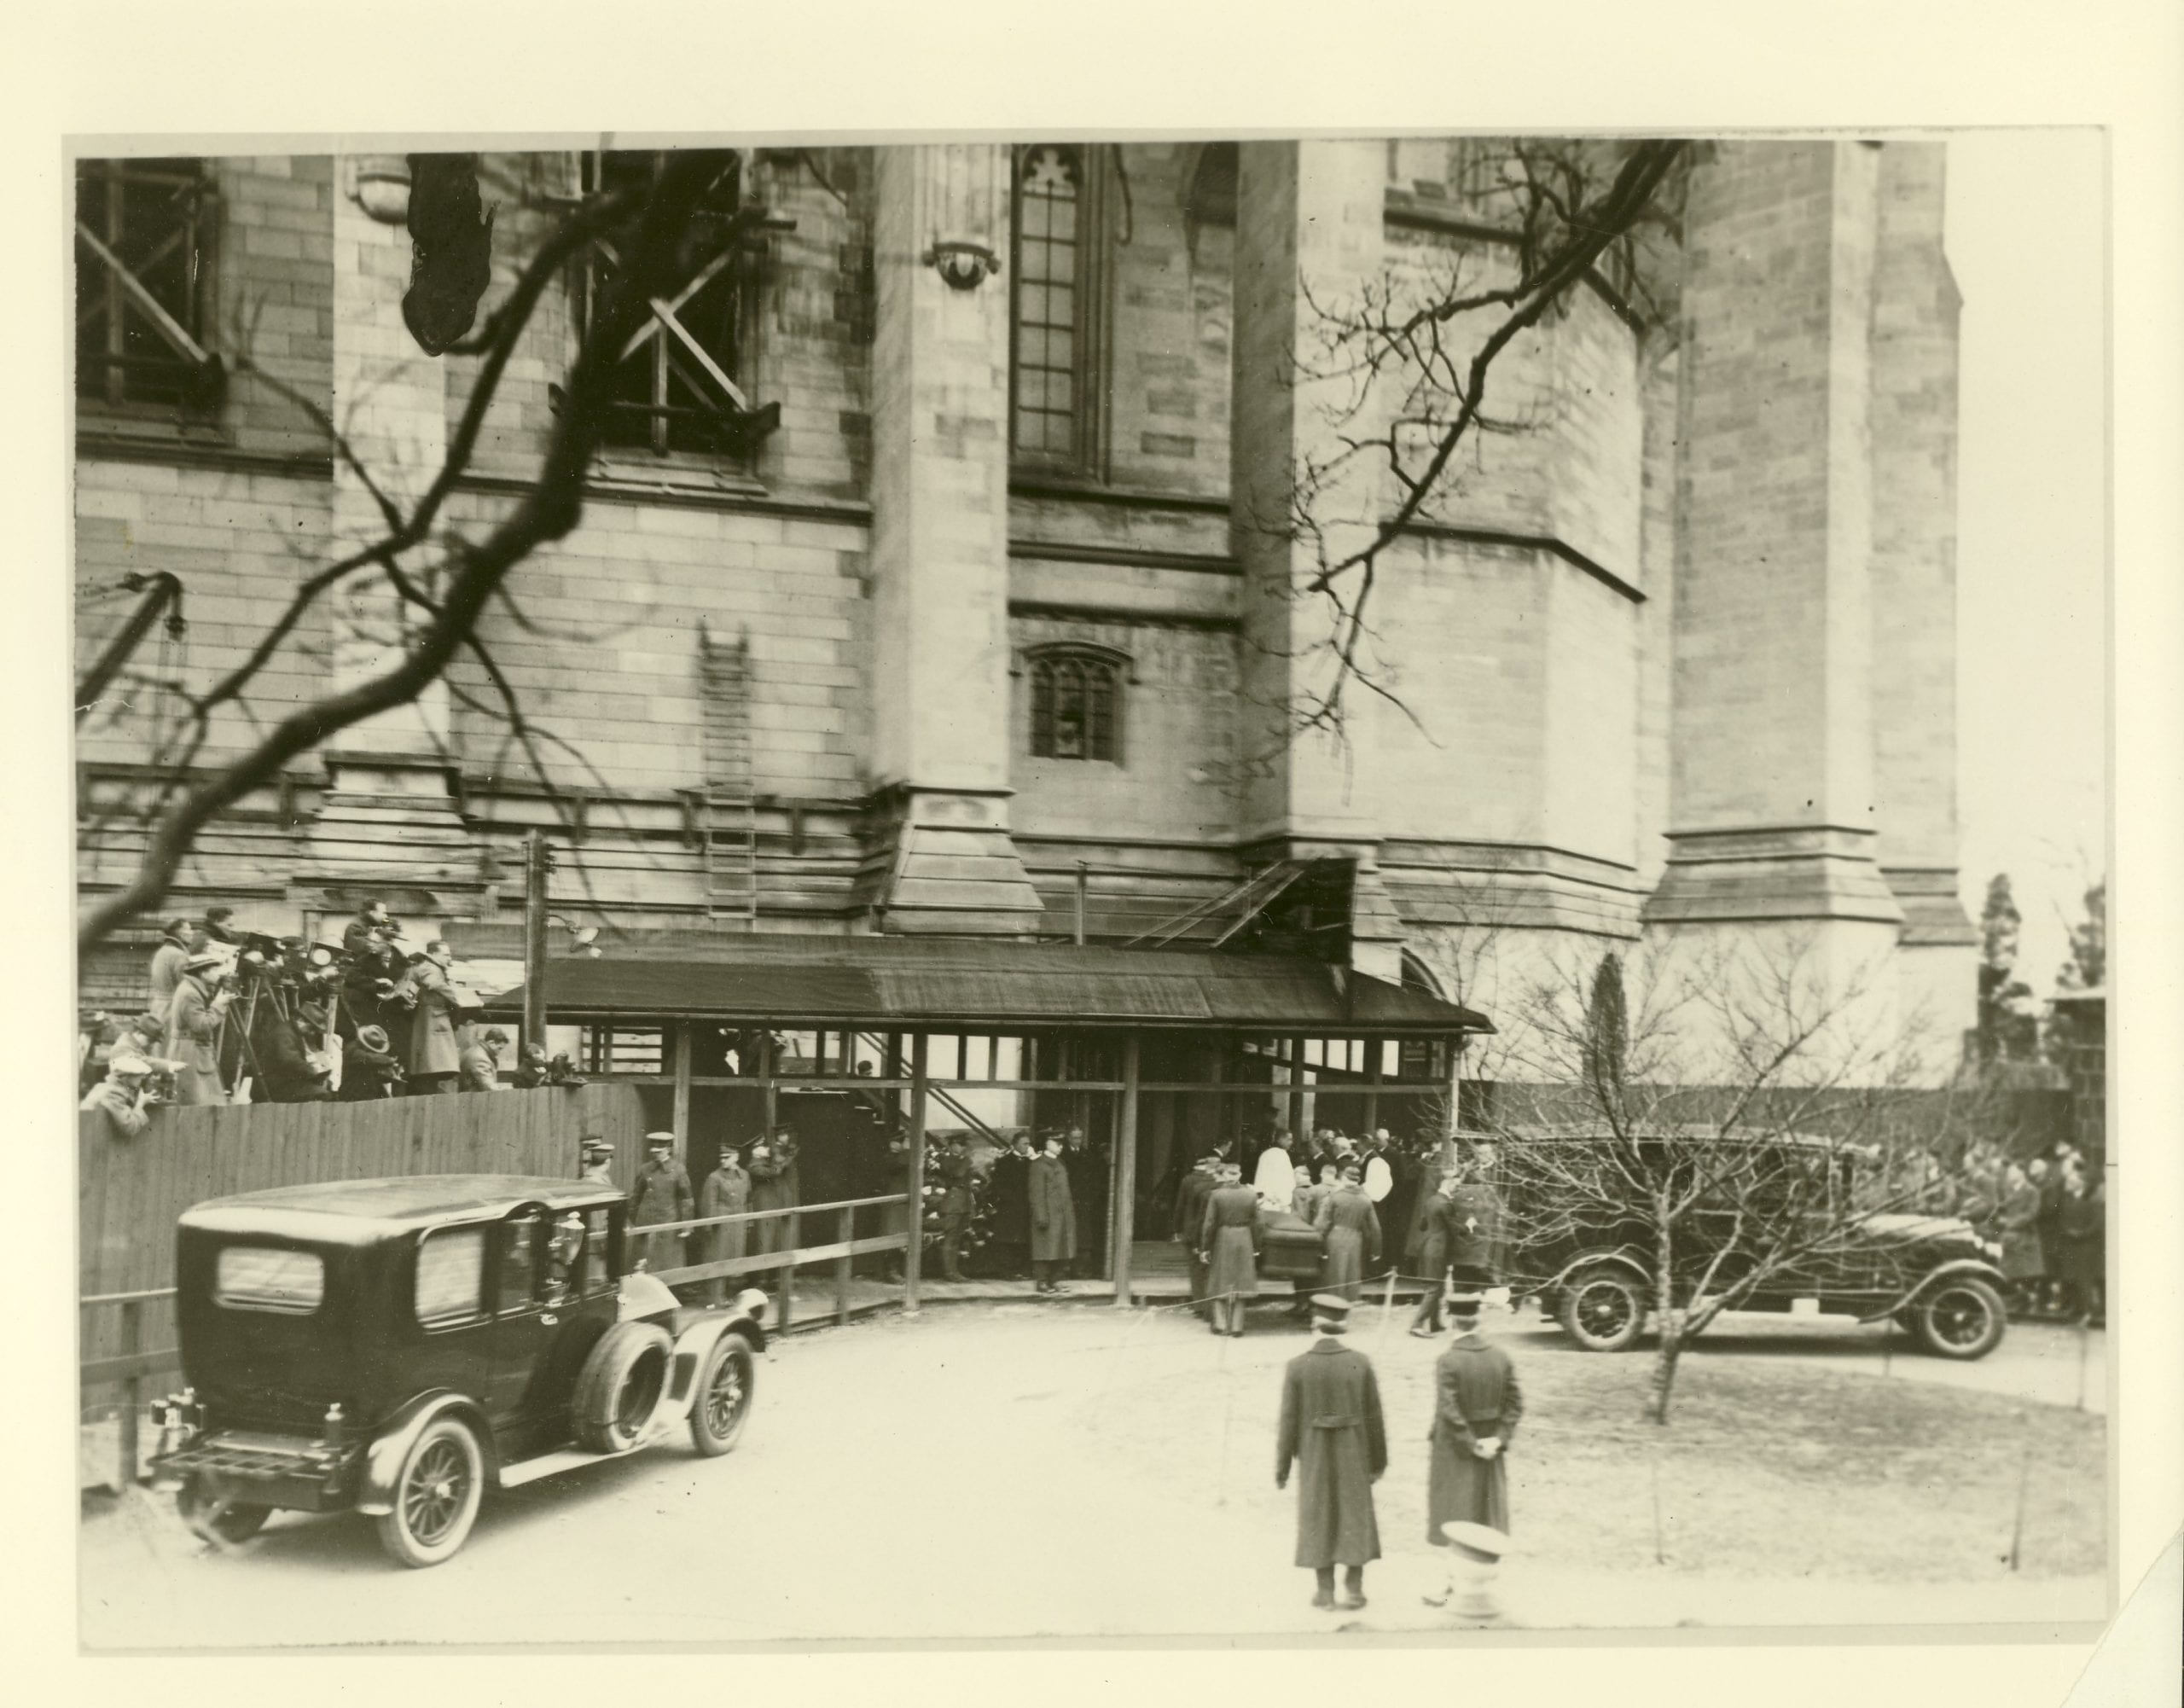 President Wilson's funeral at Washington National Cathedral